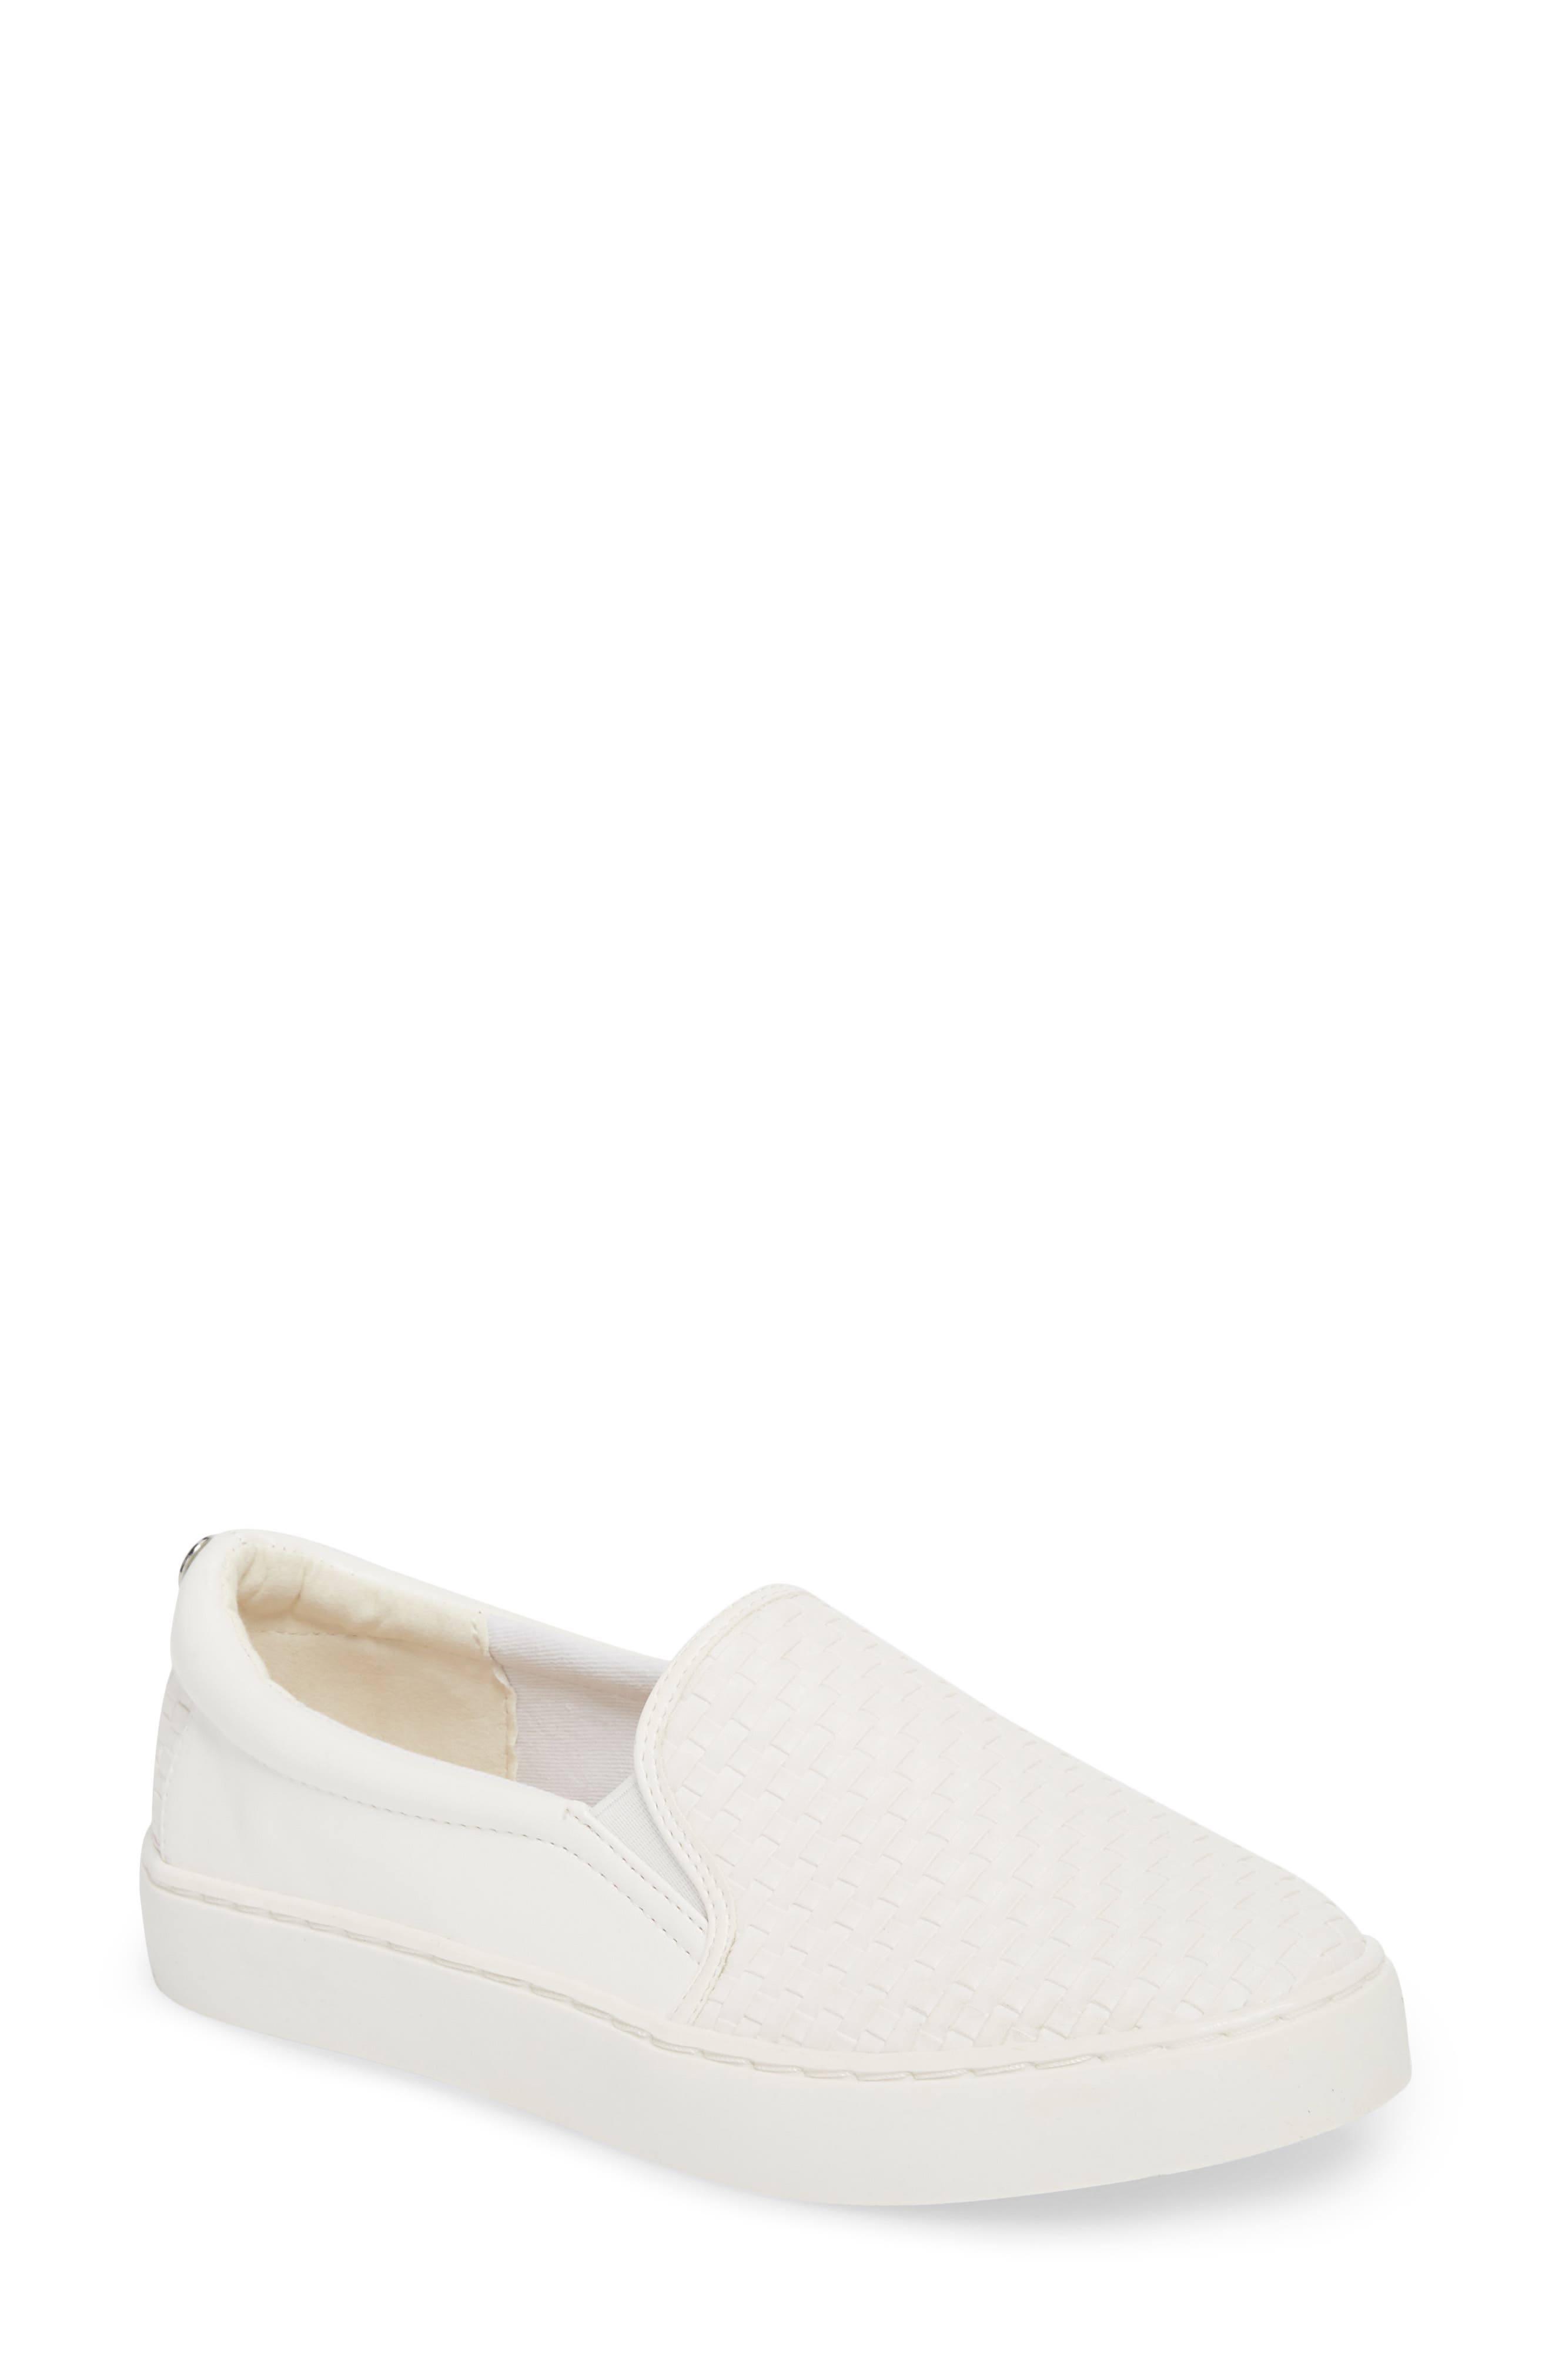 Taylor Slip-On Sport Sneakers,                         Main,                         color, 100